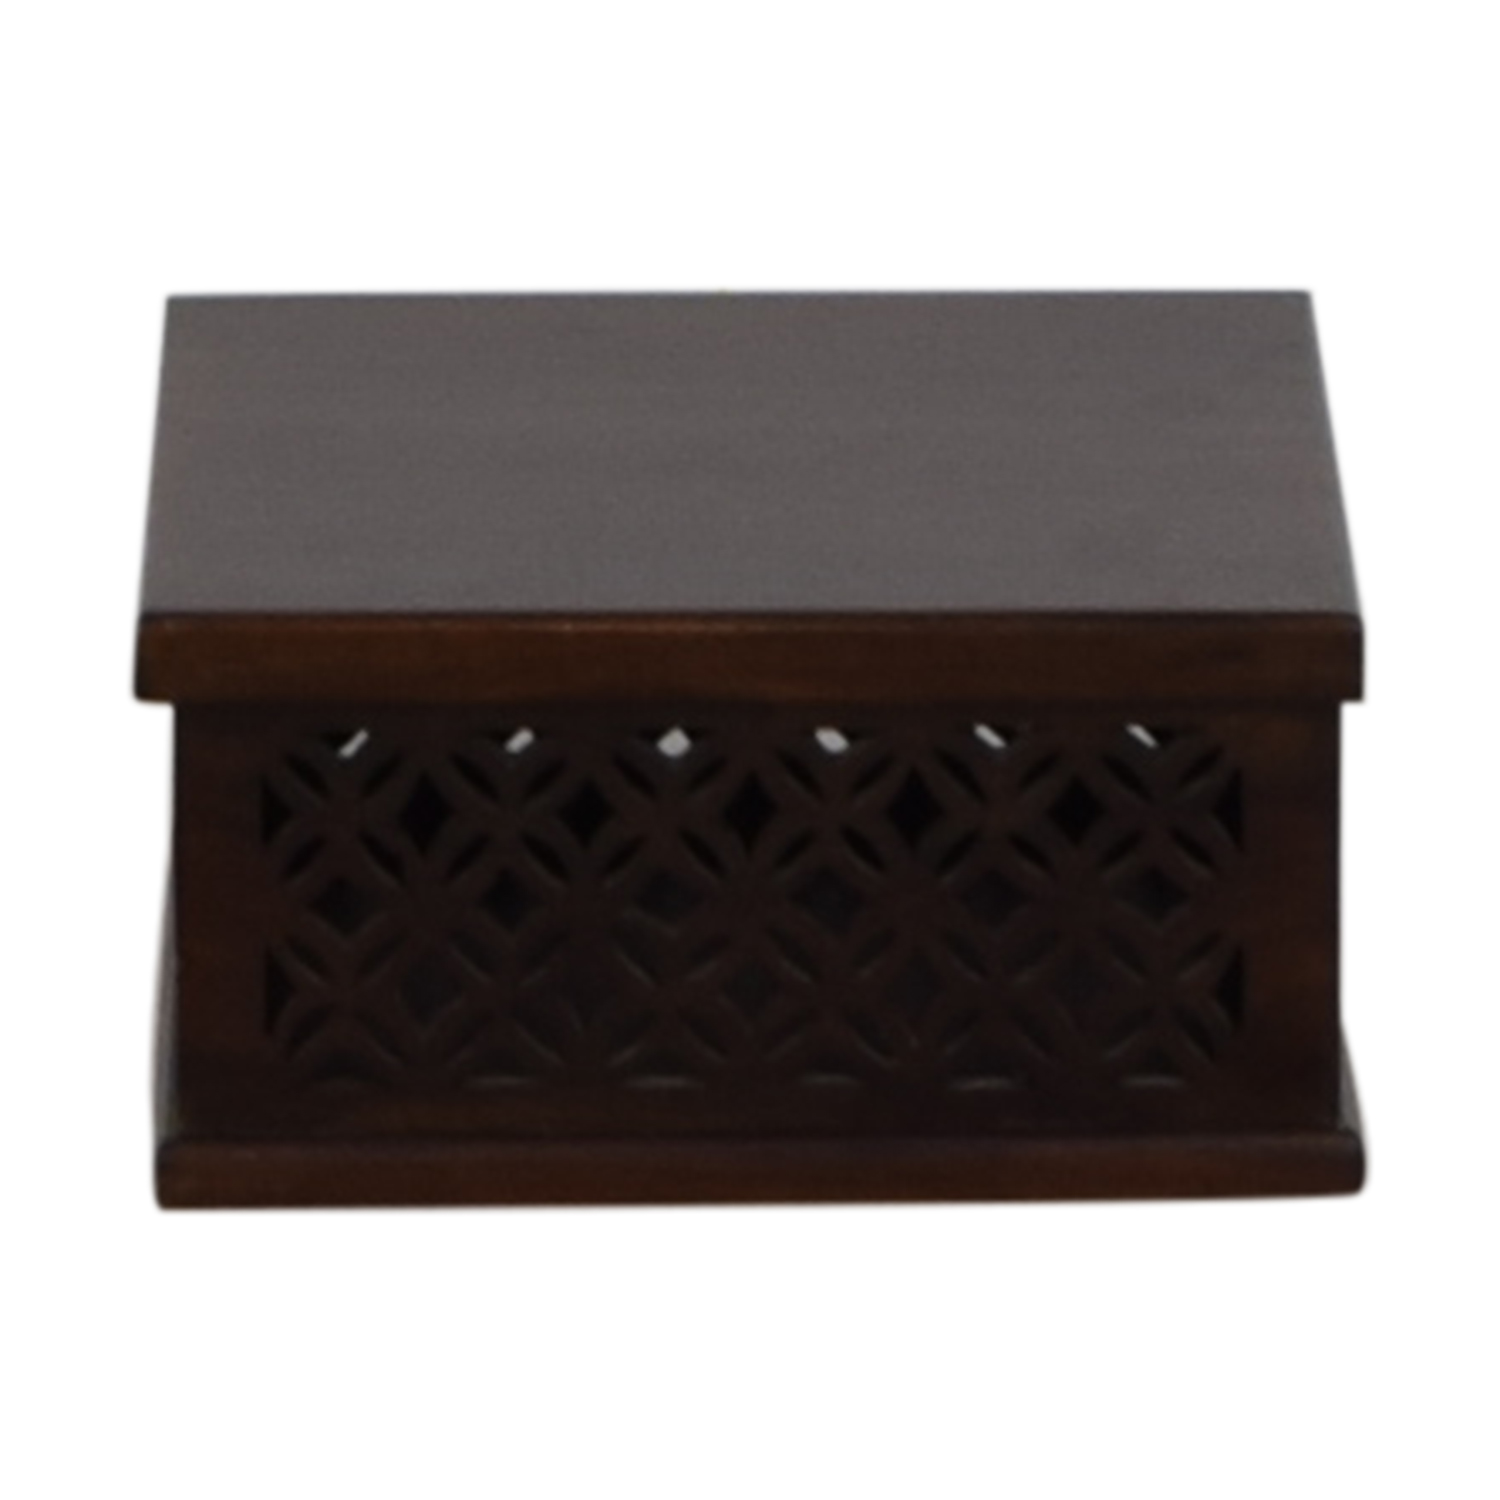 buy Pottery Barn Carved Wood Box with Hinge Top Pottery Barn Decorative Accents